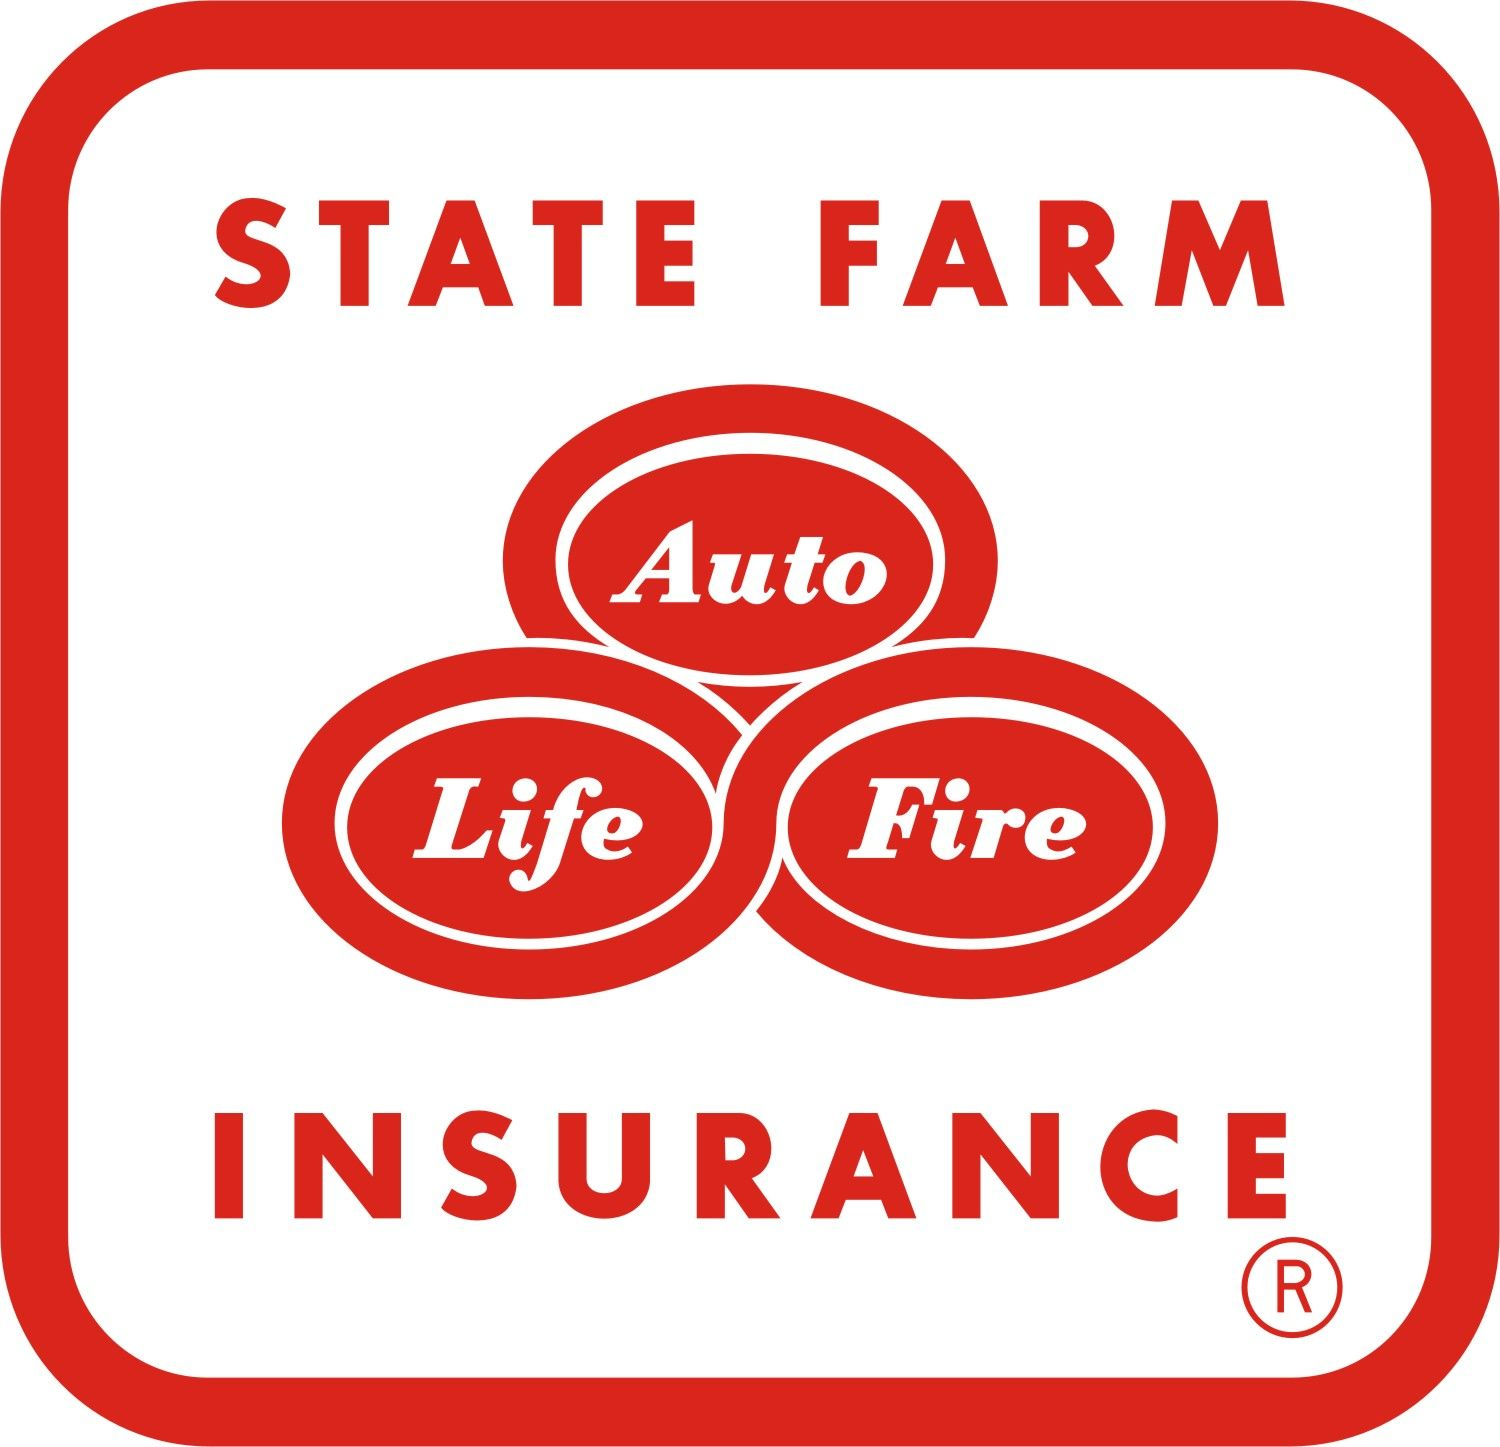 Bloomington Is The Proud Home Of State Farm Insurance Our Largest Employer With 14 450 Employees They Re M State Farm Insurance State Farm Renters Insurance